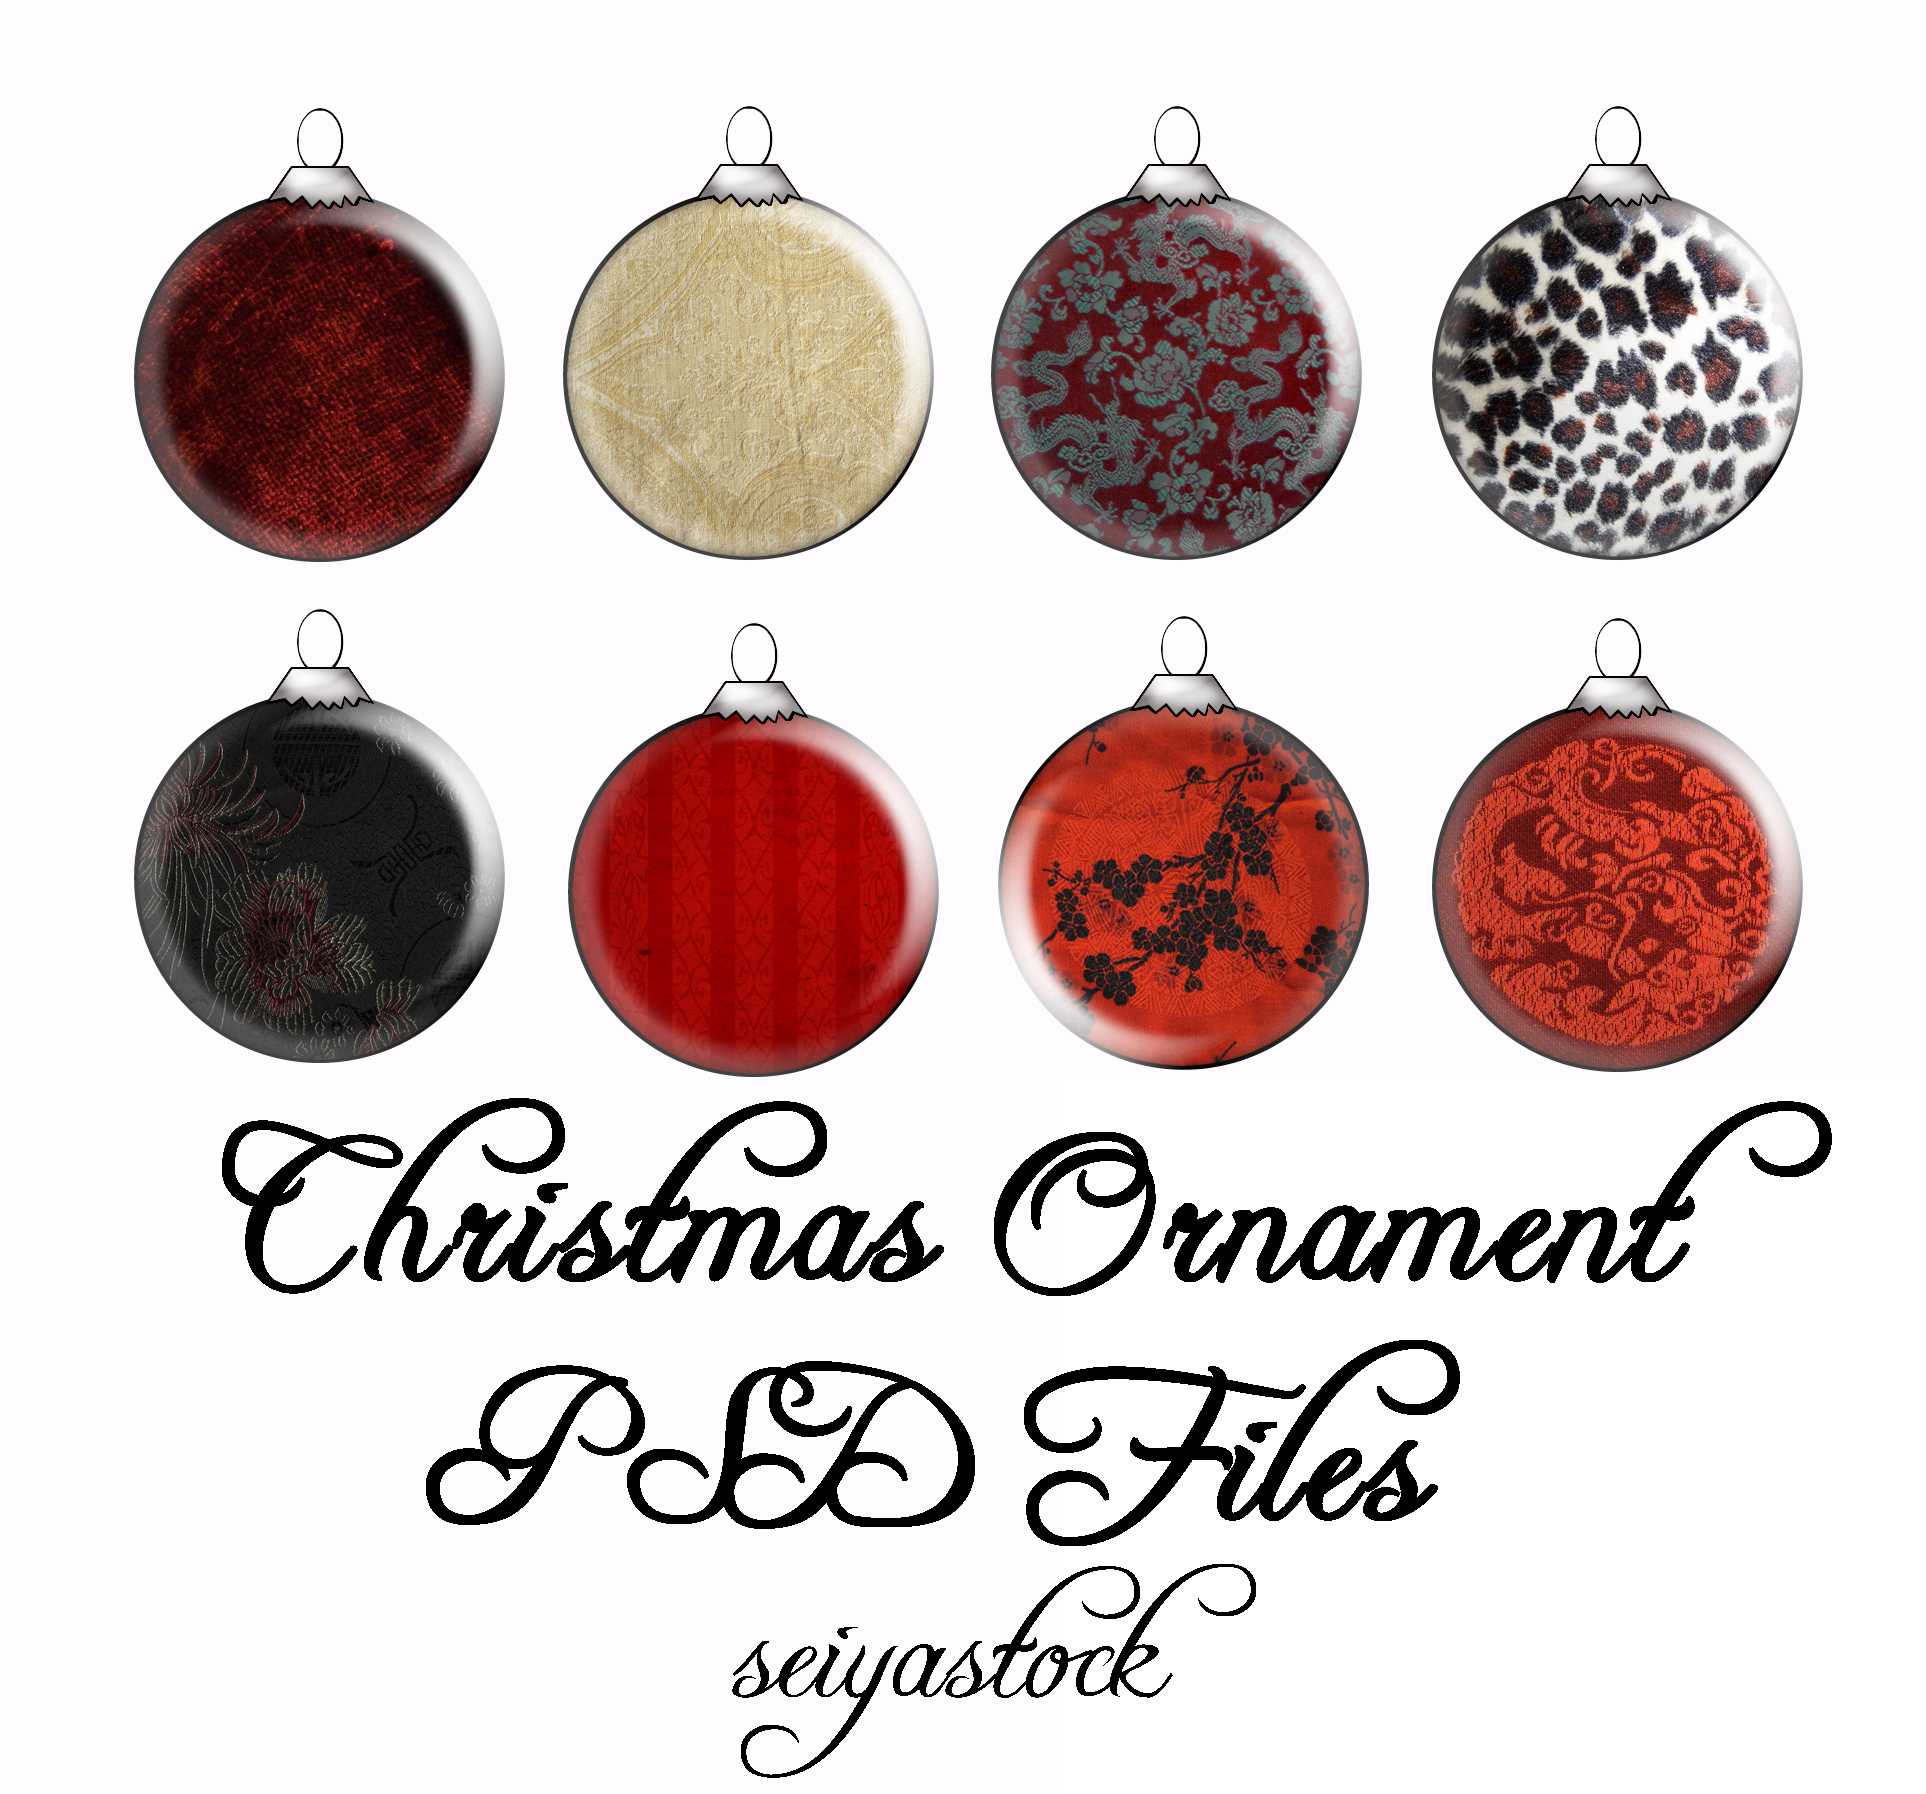 13 Christmas Ornament PSD Images